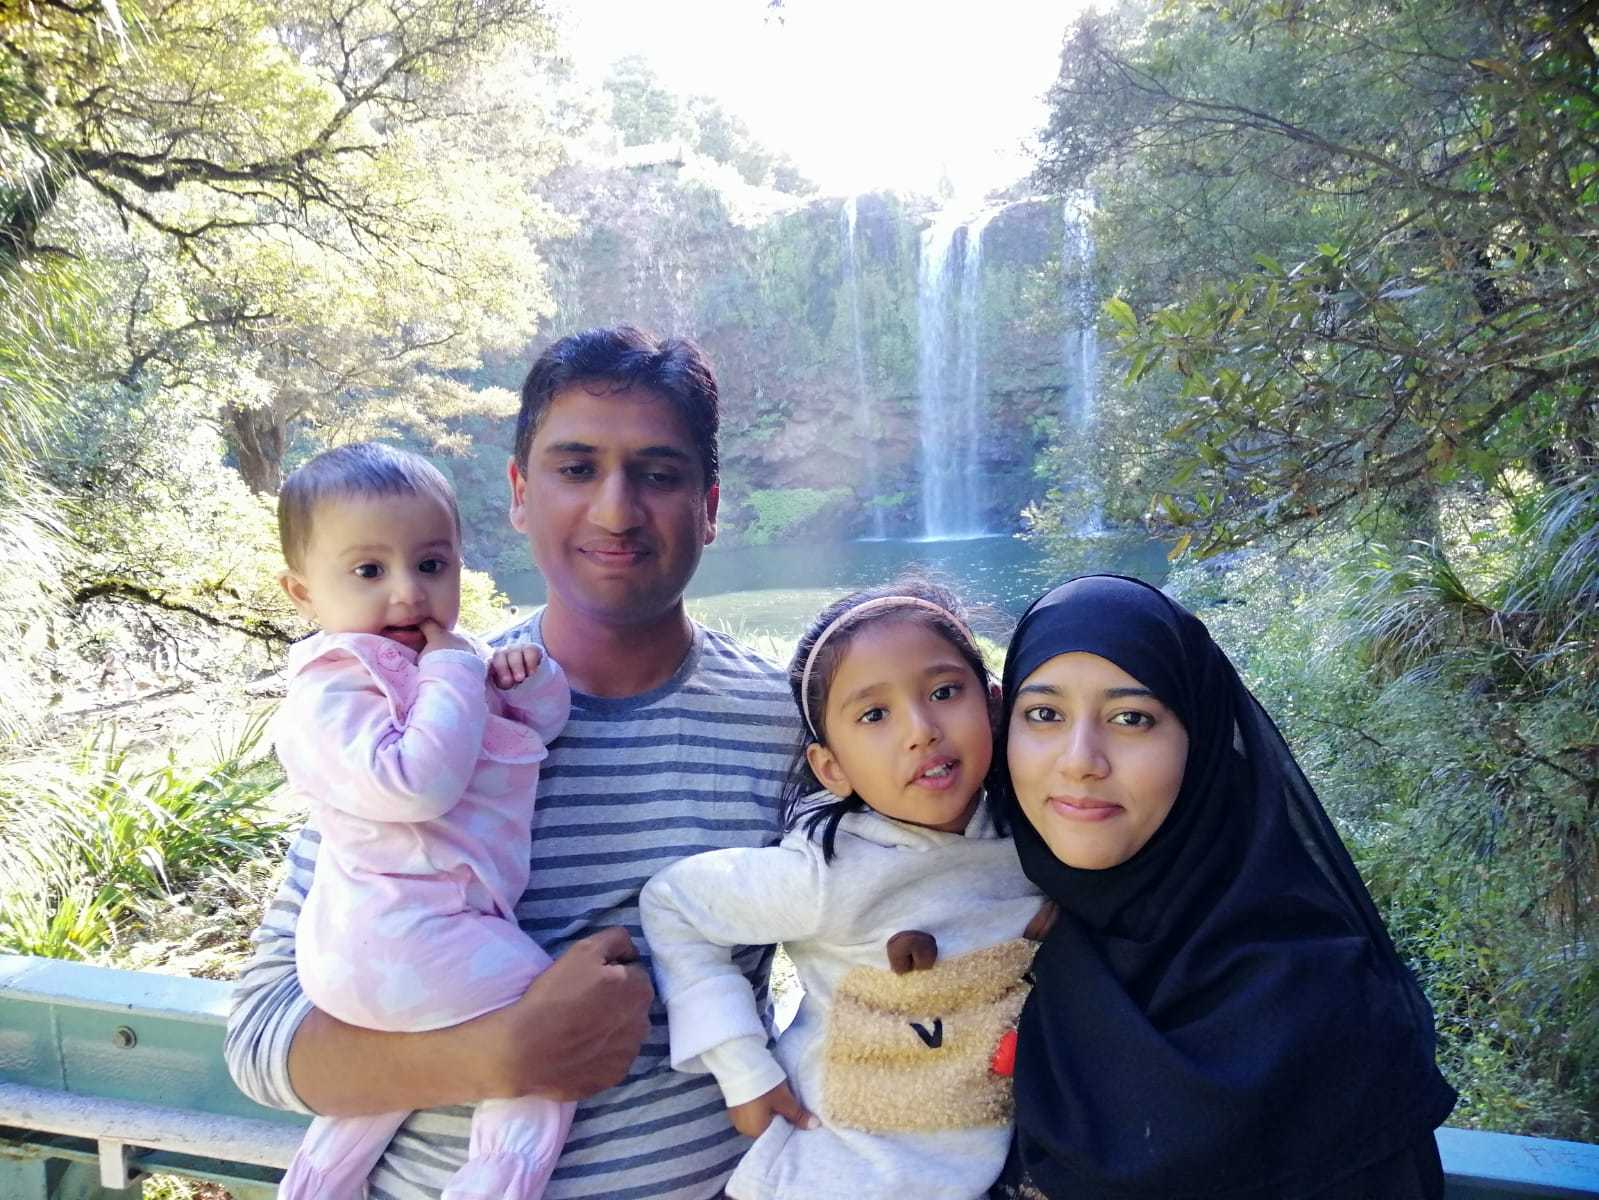 Auckland family devastated after flight cancelled and they were not alerted